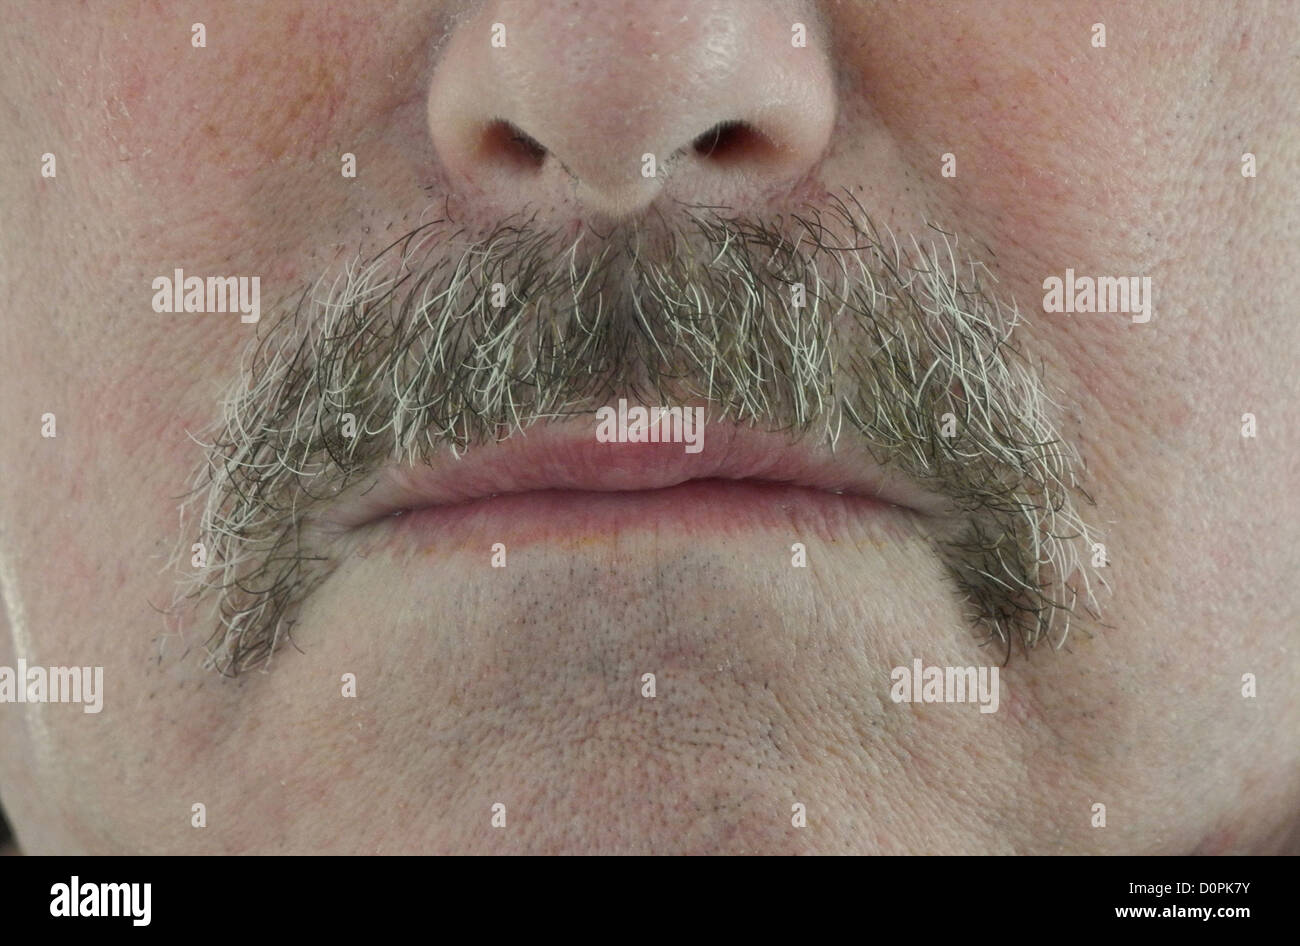 Wives and girl friends are celebrating the end of Movember - the moustache/mustache growing event taking place during - Stock Image